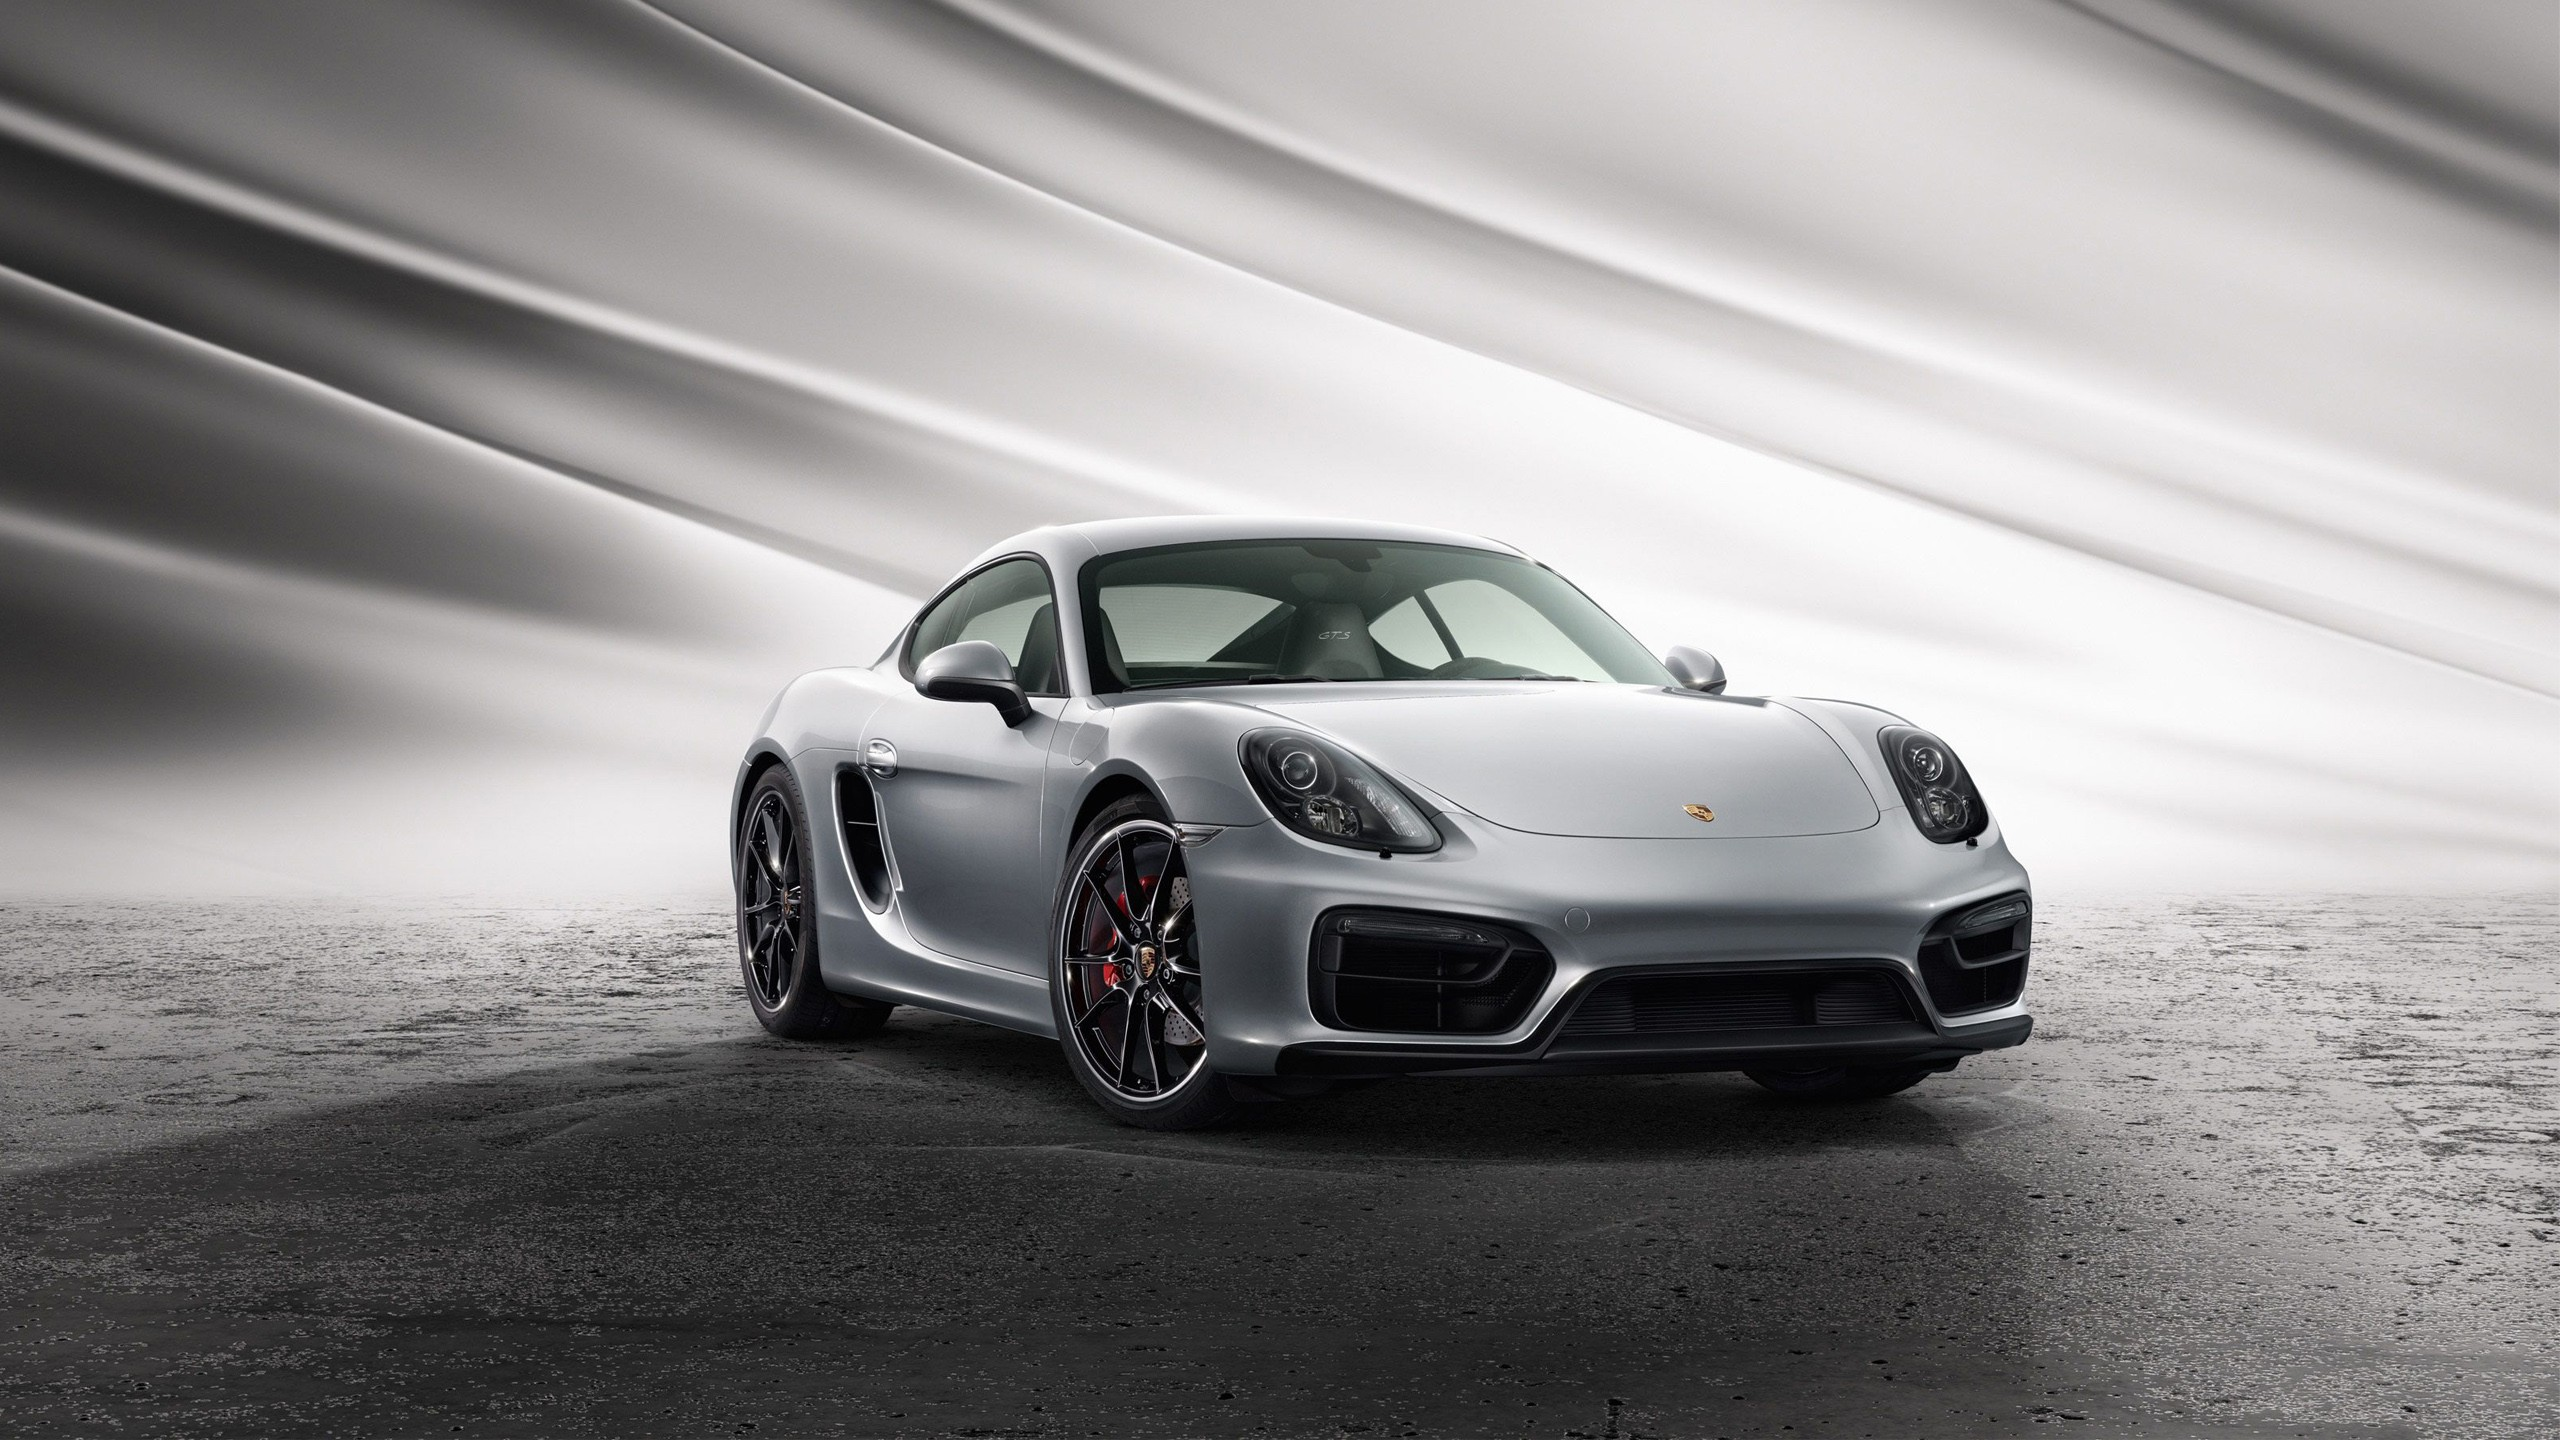 Hd Widescreen Christmas Desktop Wallpaper 2015 Porsche Cayman Gts Wallpapers Hd Wallpapers Id 14991